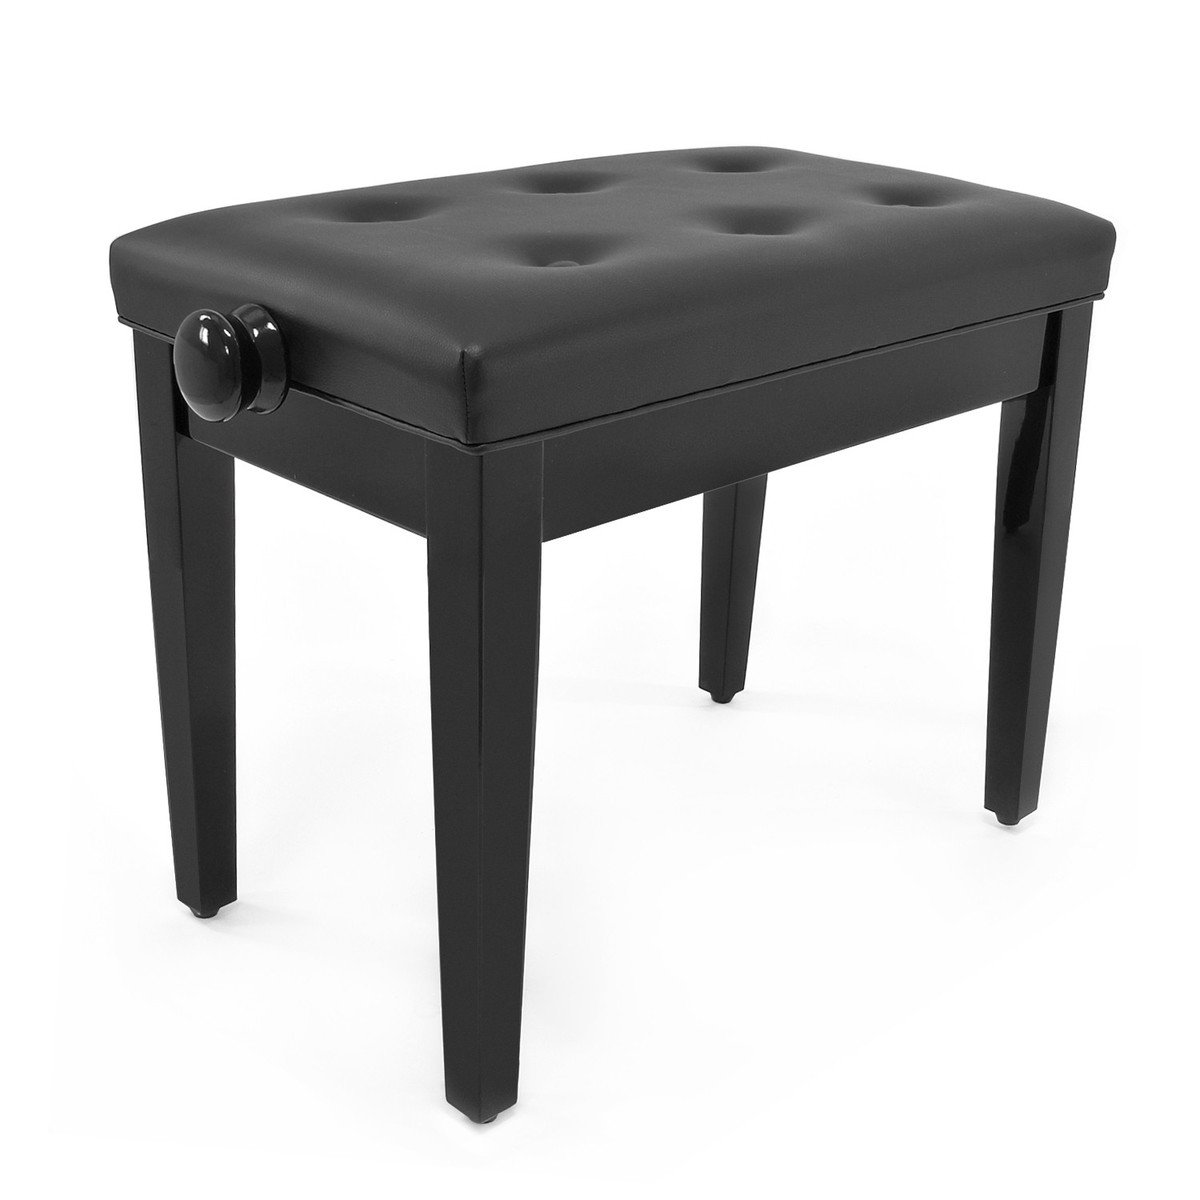 Modern piano stool - Minster Grand500 Digital Grand Piano With Stool Amazon Co Uk Musical Instruments